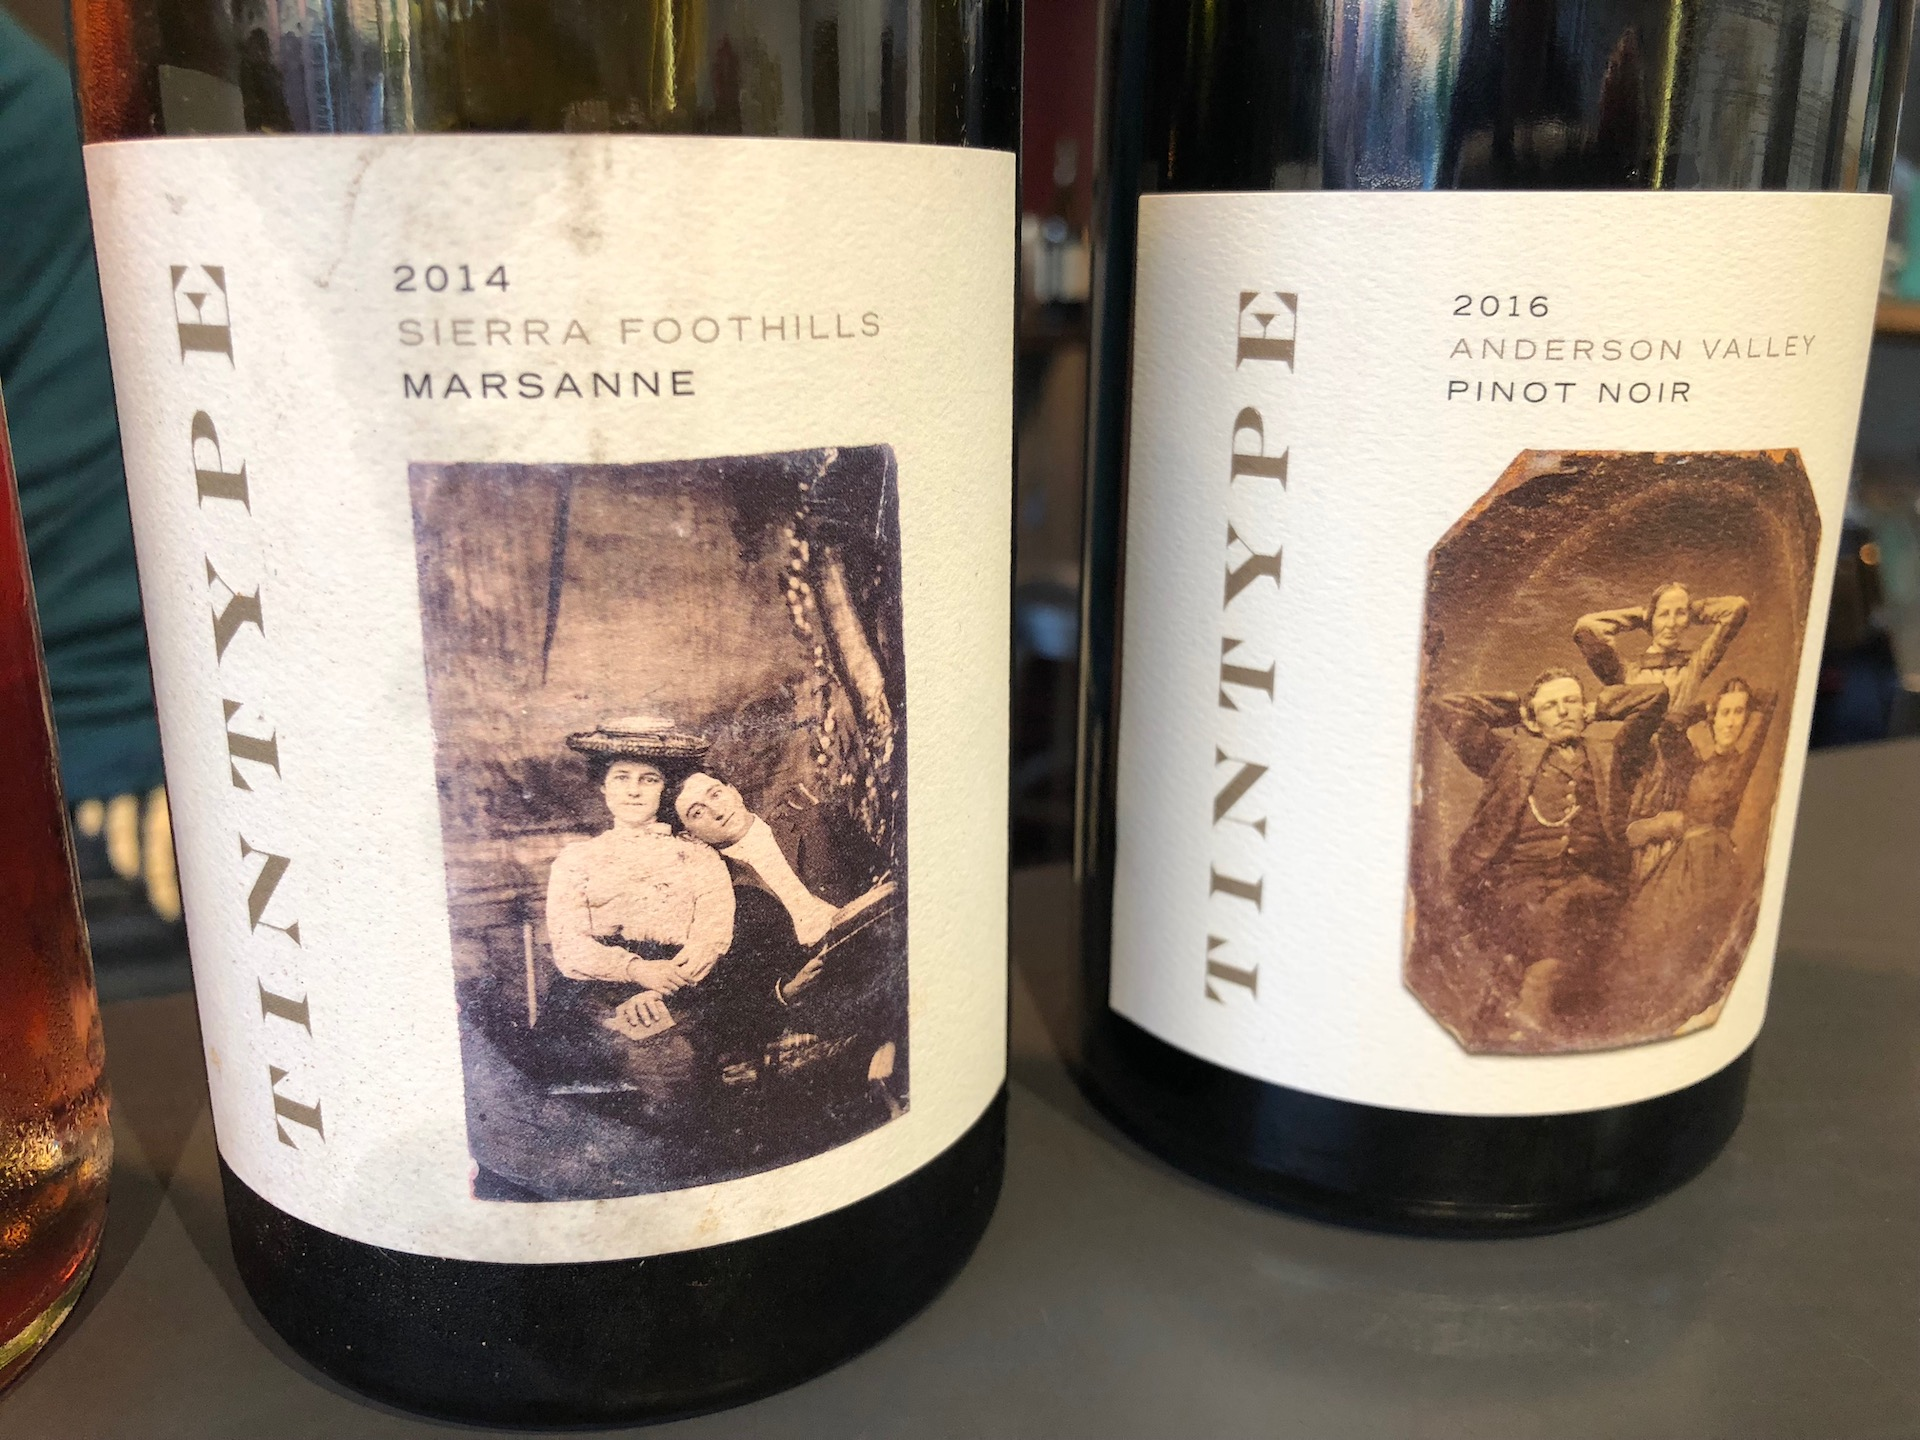 Tintype's labels show how the wines are focused on different regions of California wine — and old photography